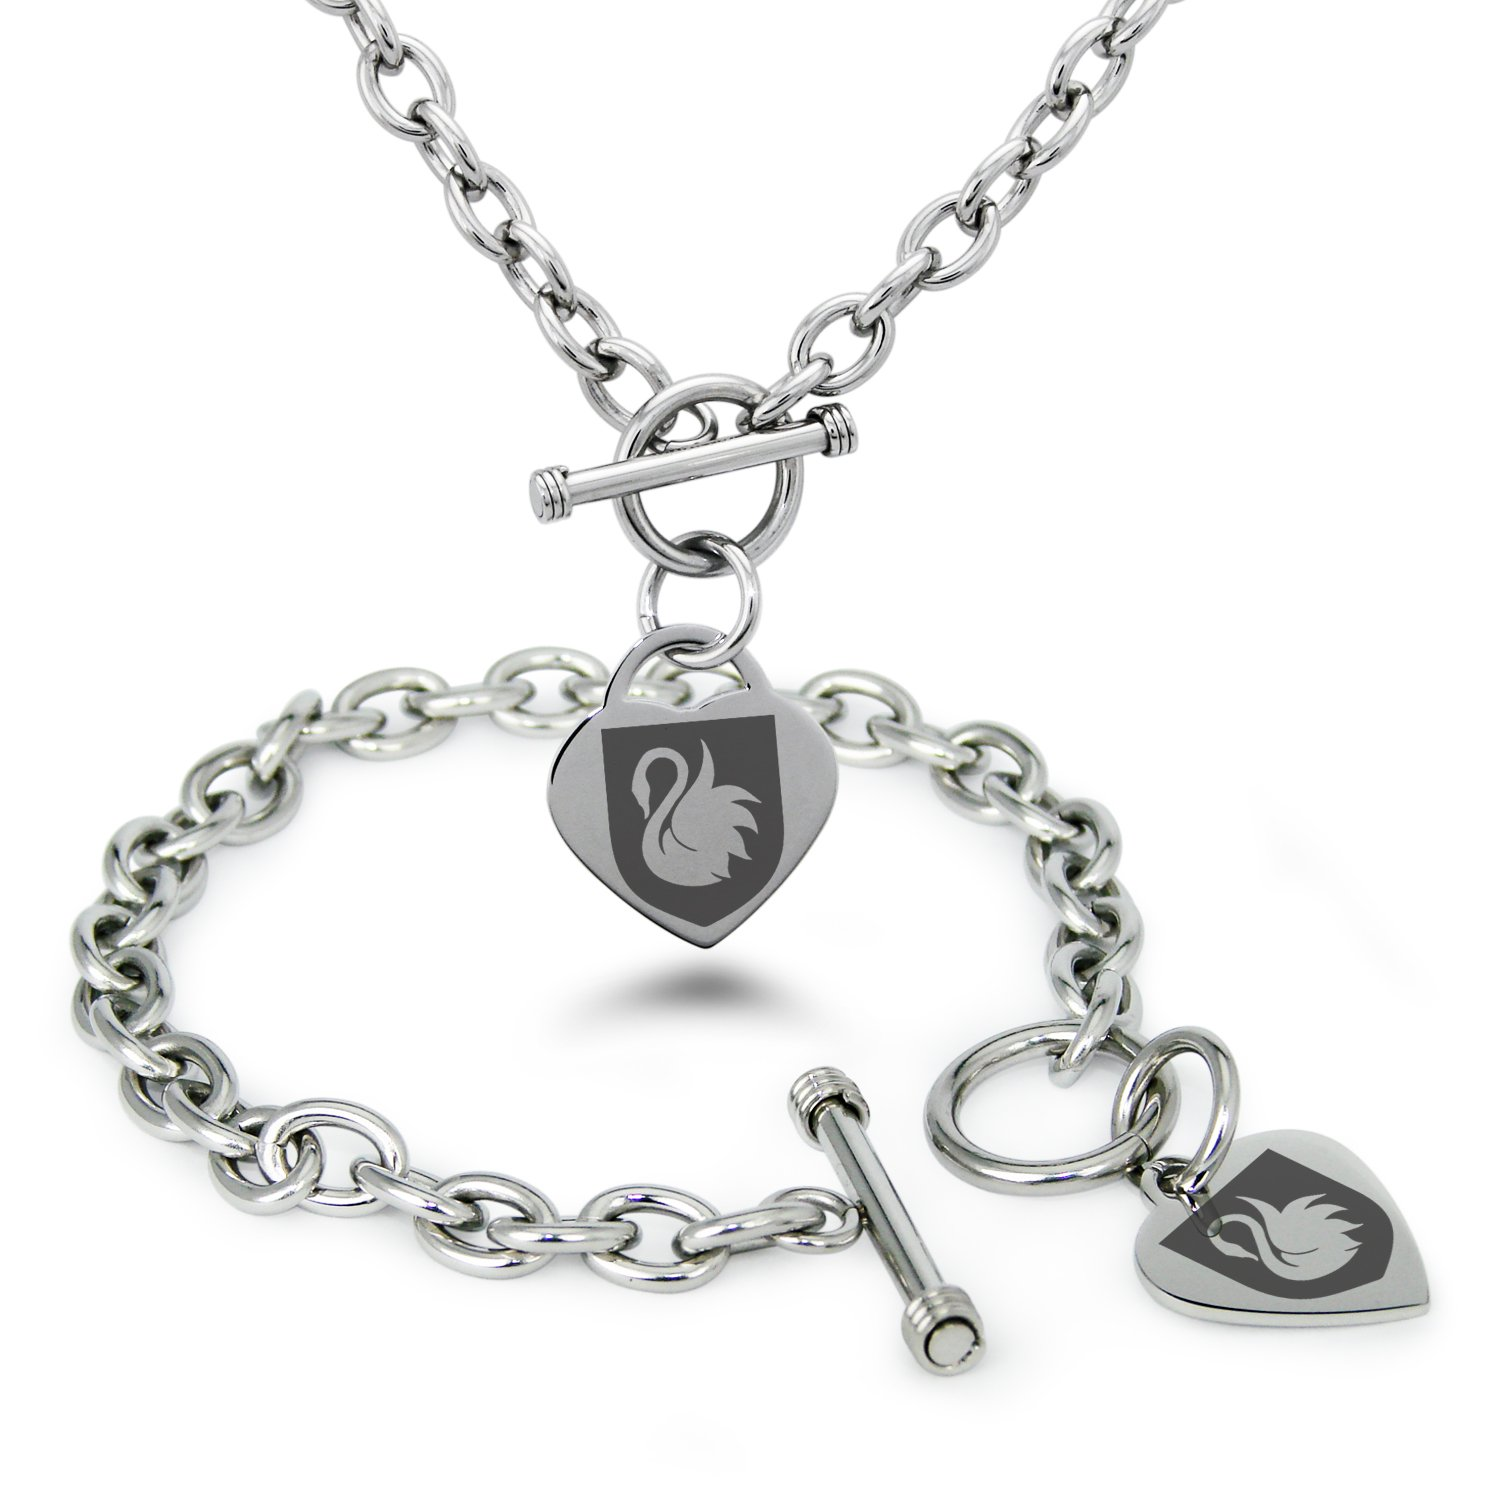 Tioneer Stainless Steel Swan Harmony Coat of Arms Shield Symbols Heart Charm, Bracelet & Necklace Set